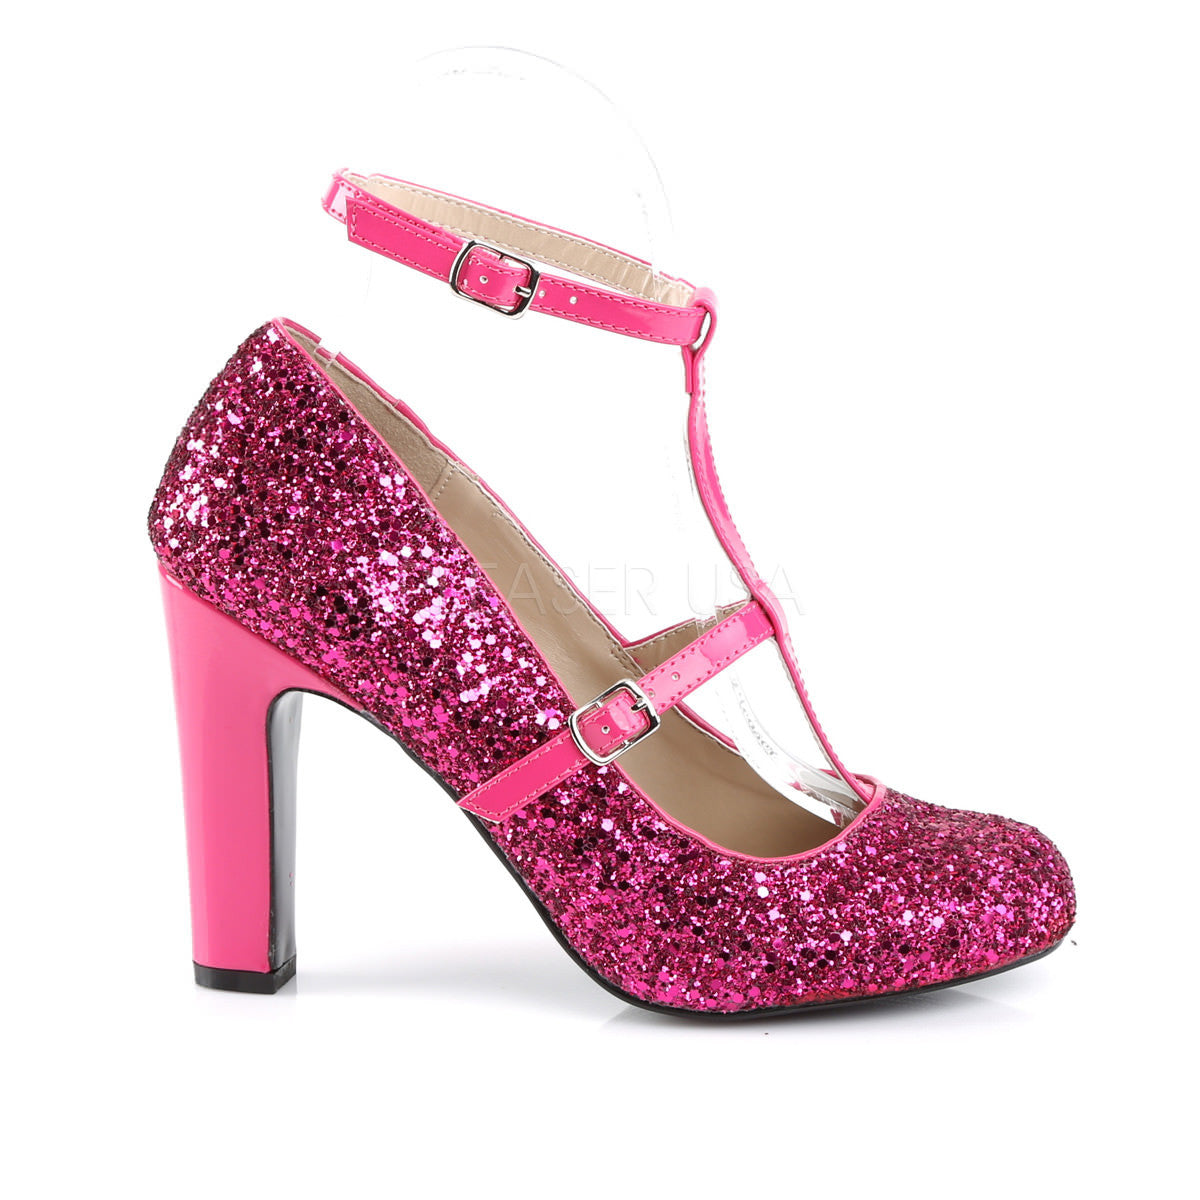 d6db8100fa12 Pleaser Pink Label QUEEN-01 Hot Pink Pat-Glitter Round Toe Pumps